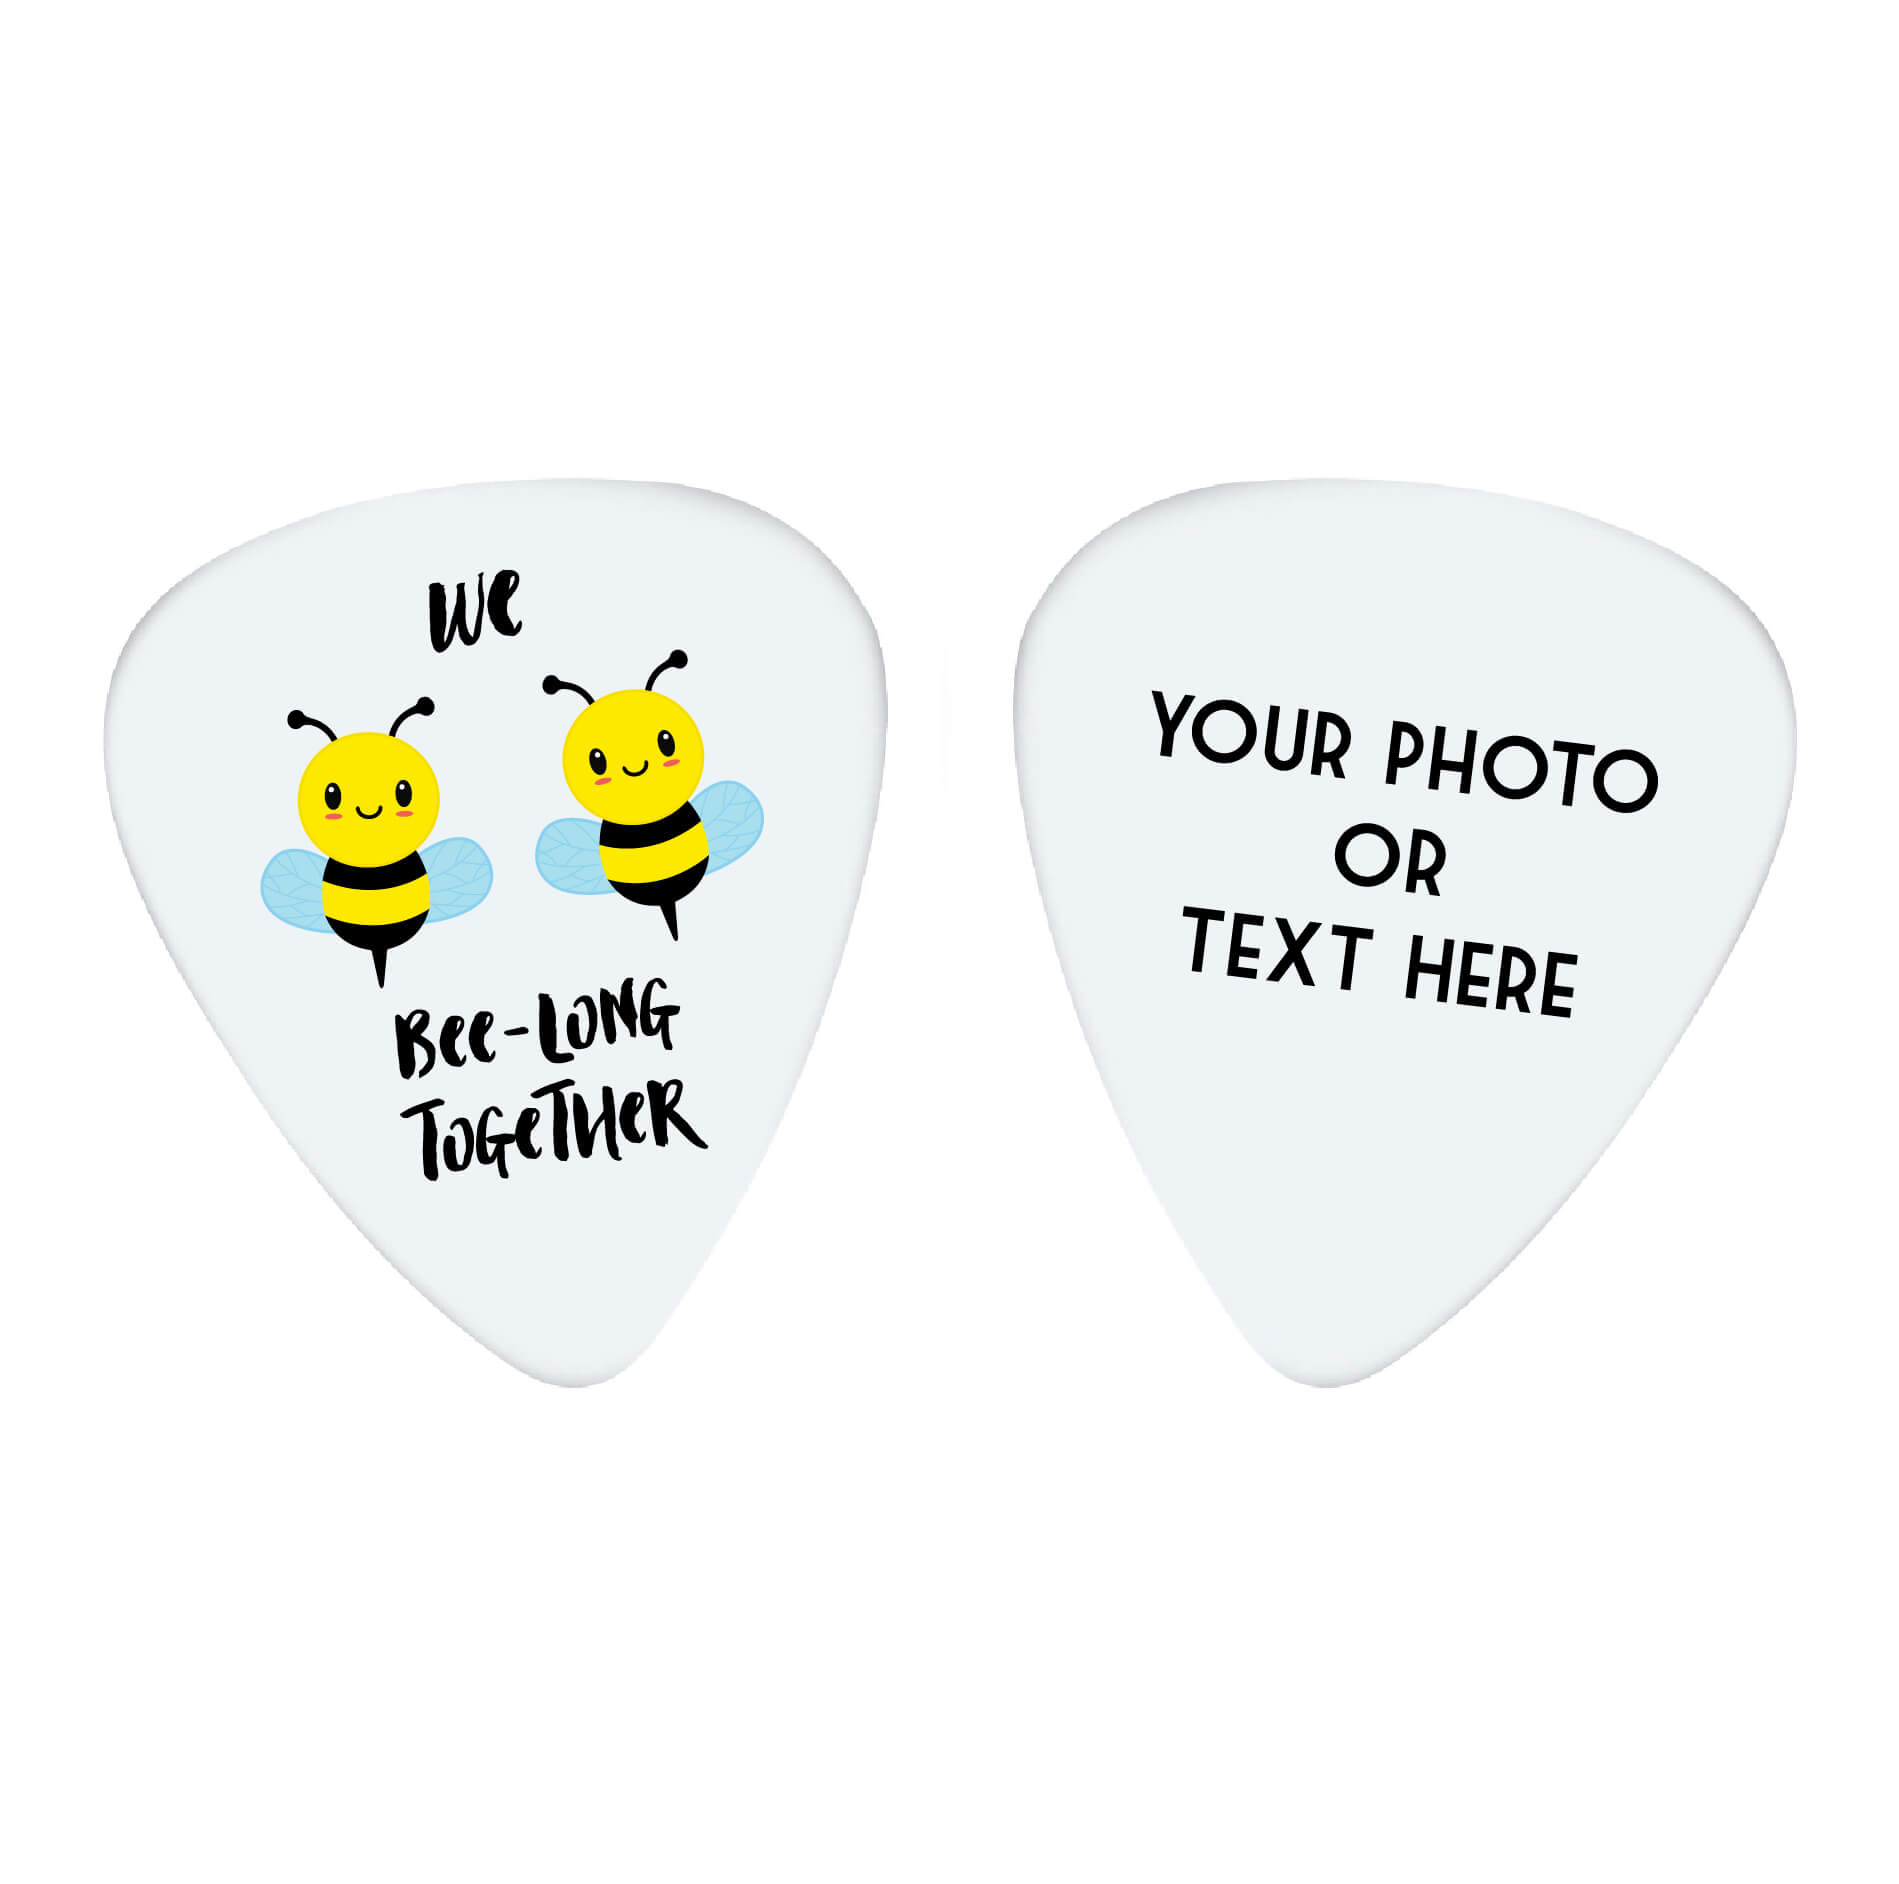 We Bee-Long Together Photo Guitar Pick